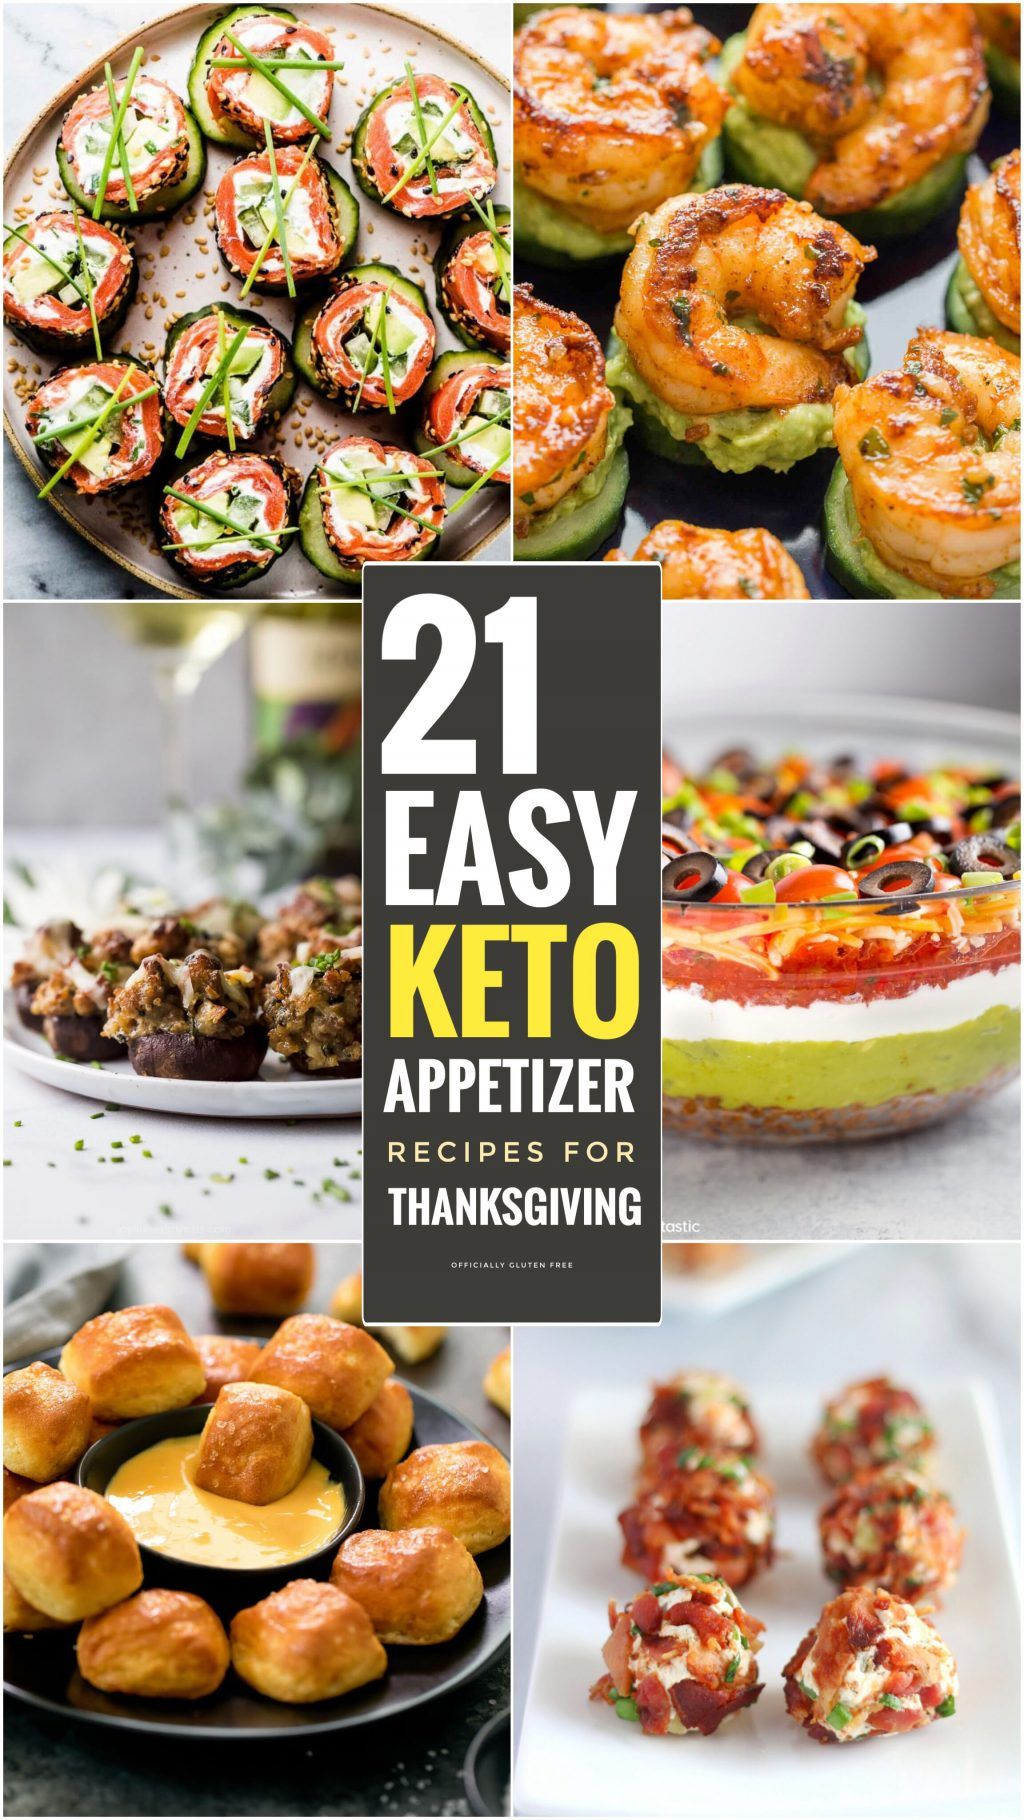 21 Easy Keto Appetizers for Thanksgiving | Holiday Appetizer Recipes